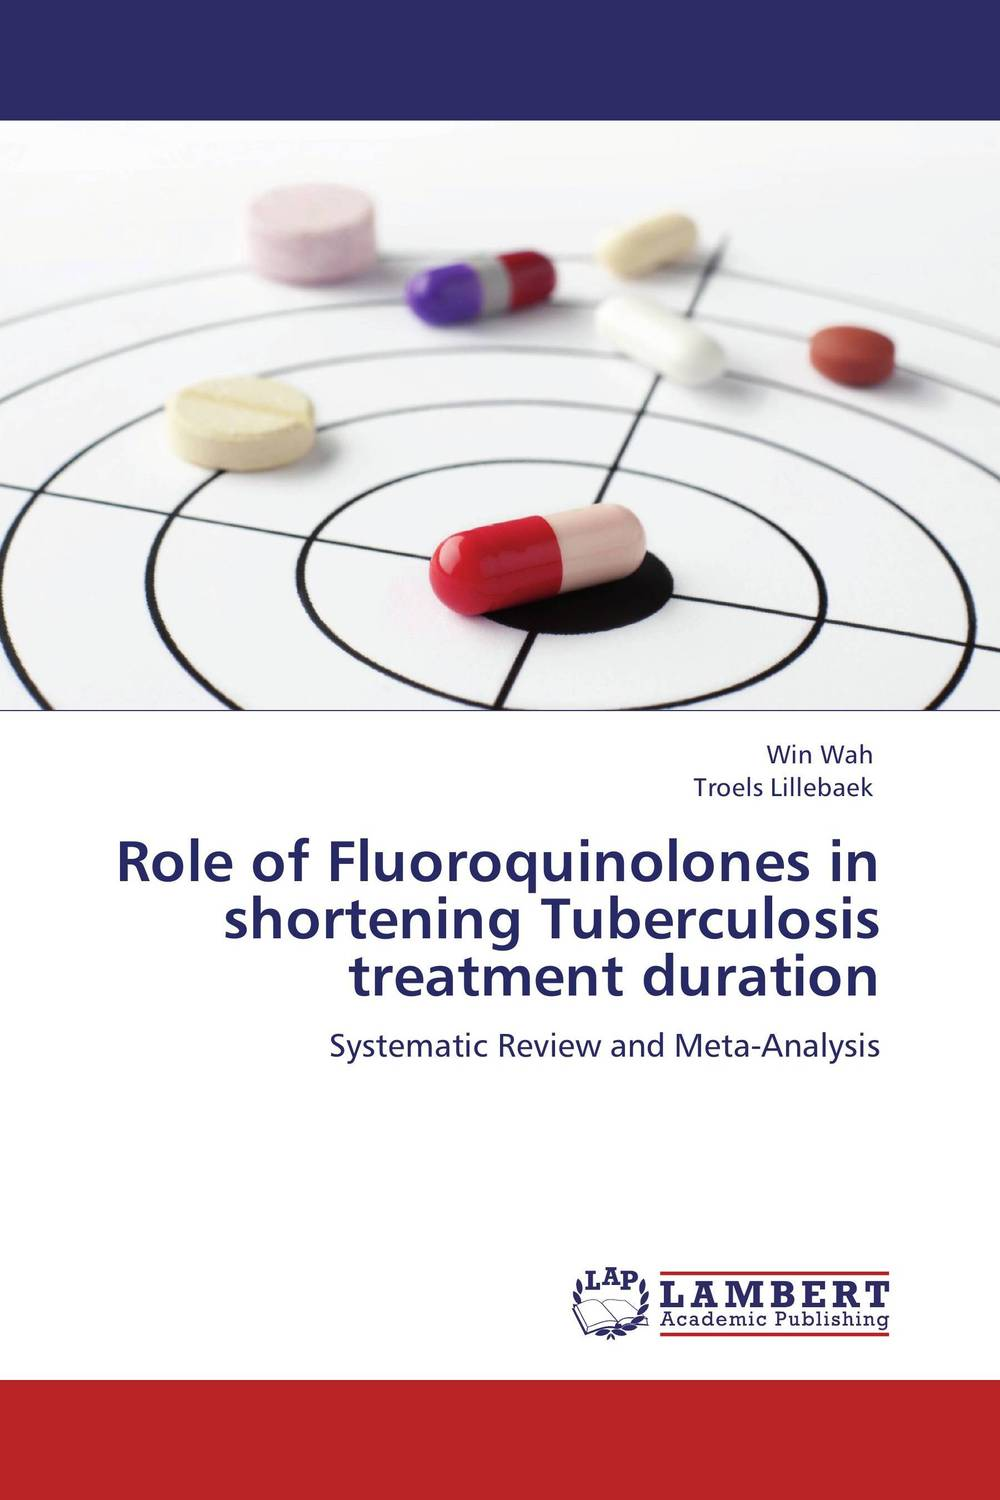 Role of Fluoroquinolones in shortening Tuberculosis treatment duration